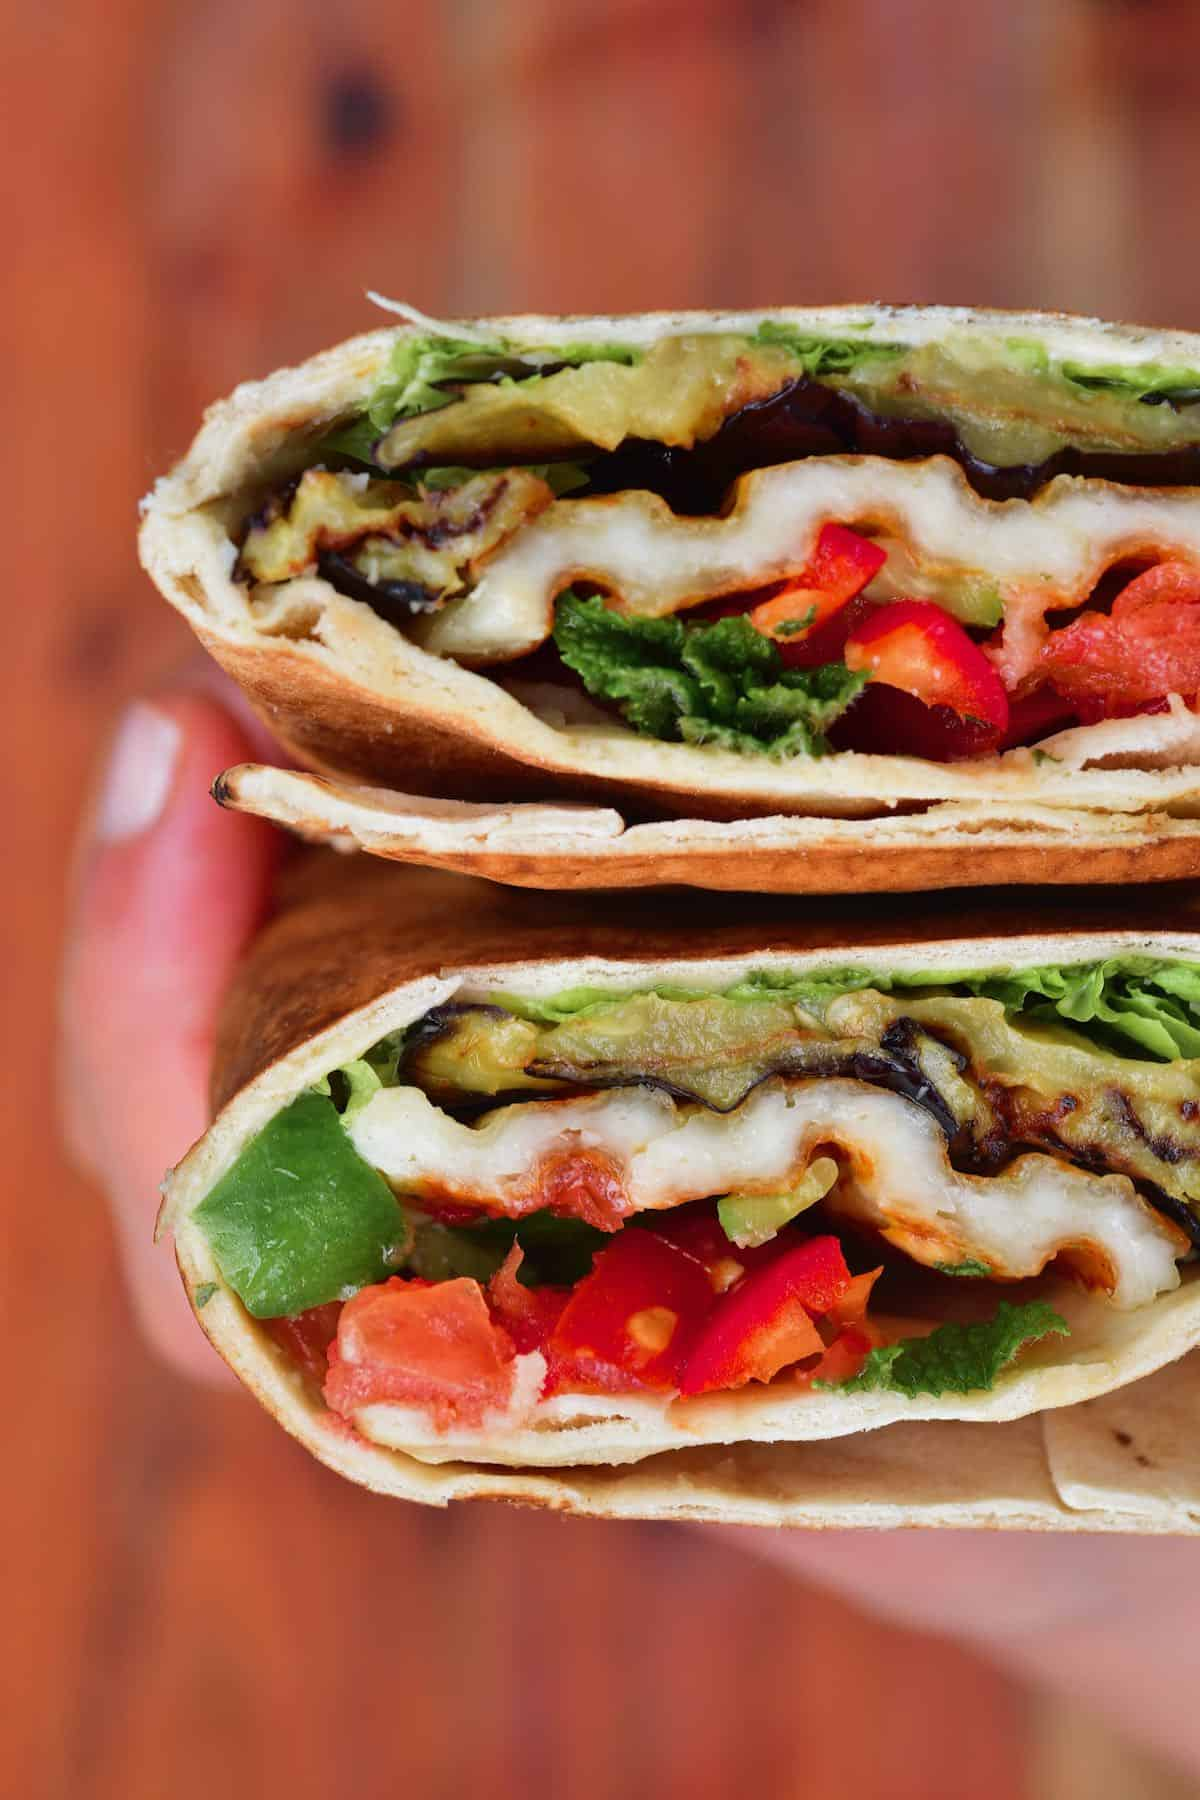 Two halves of an eggplant wrap